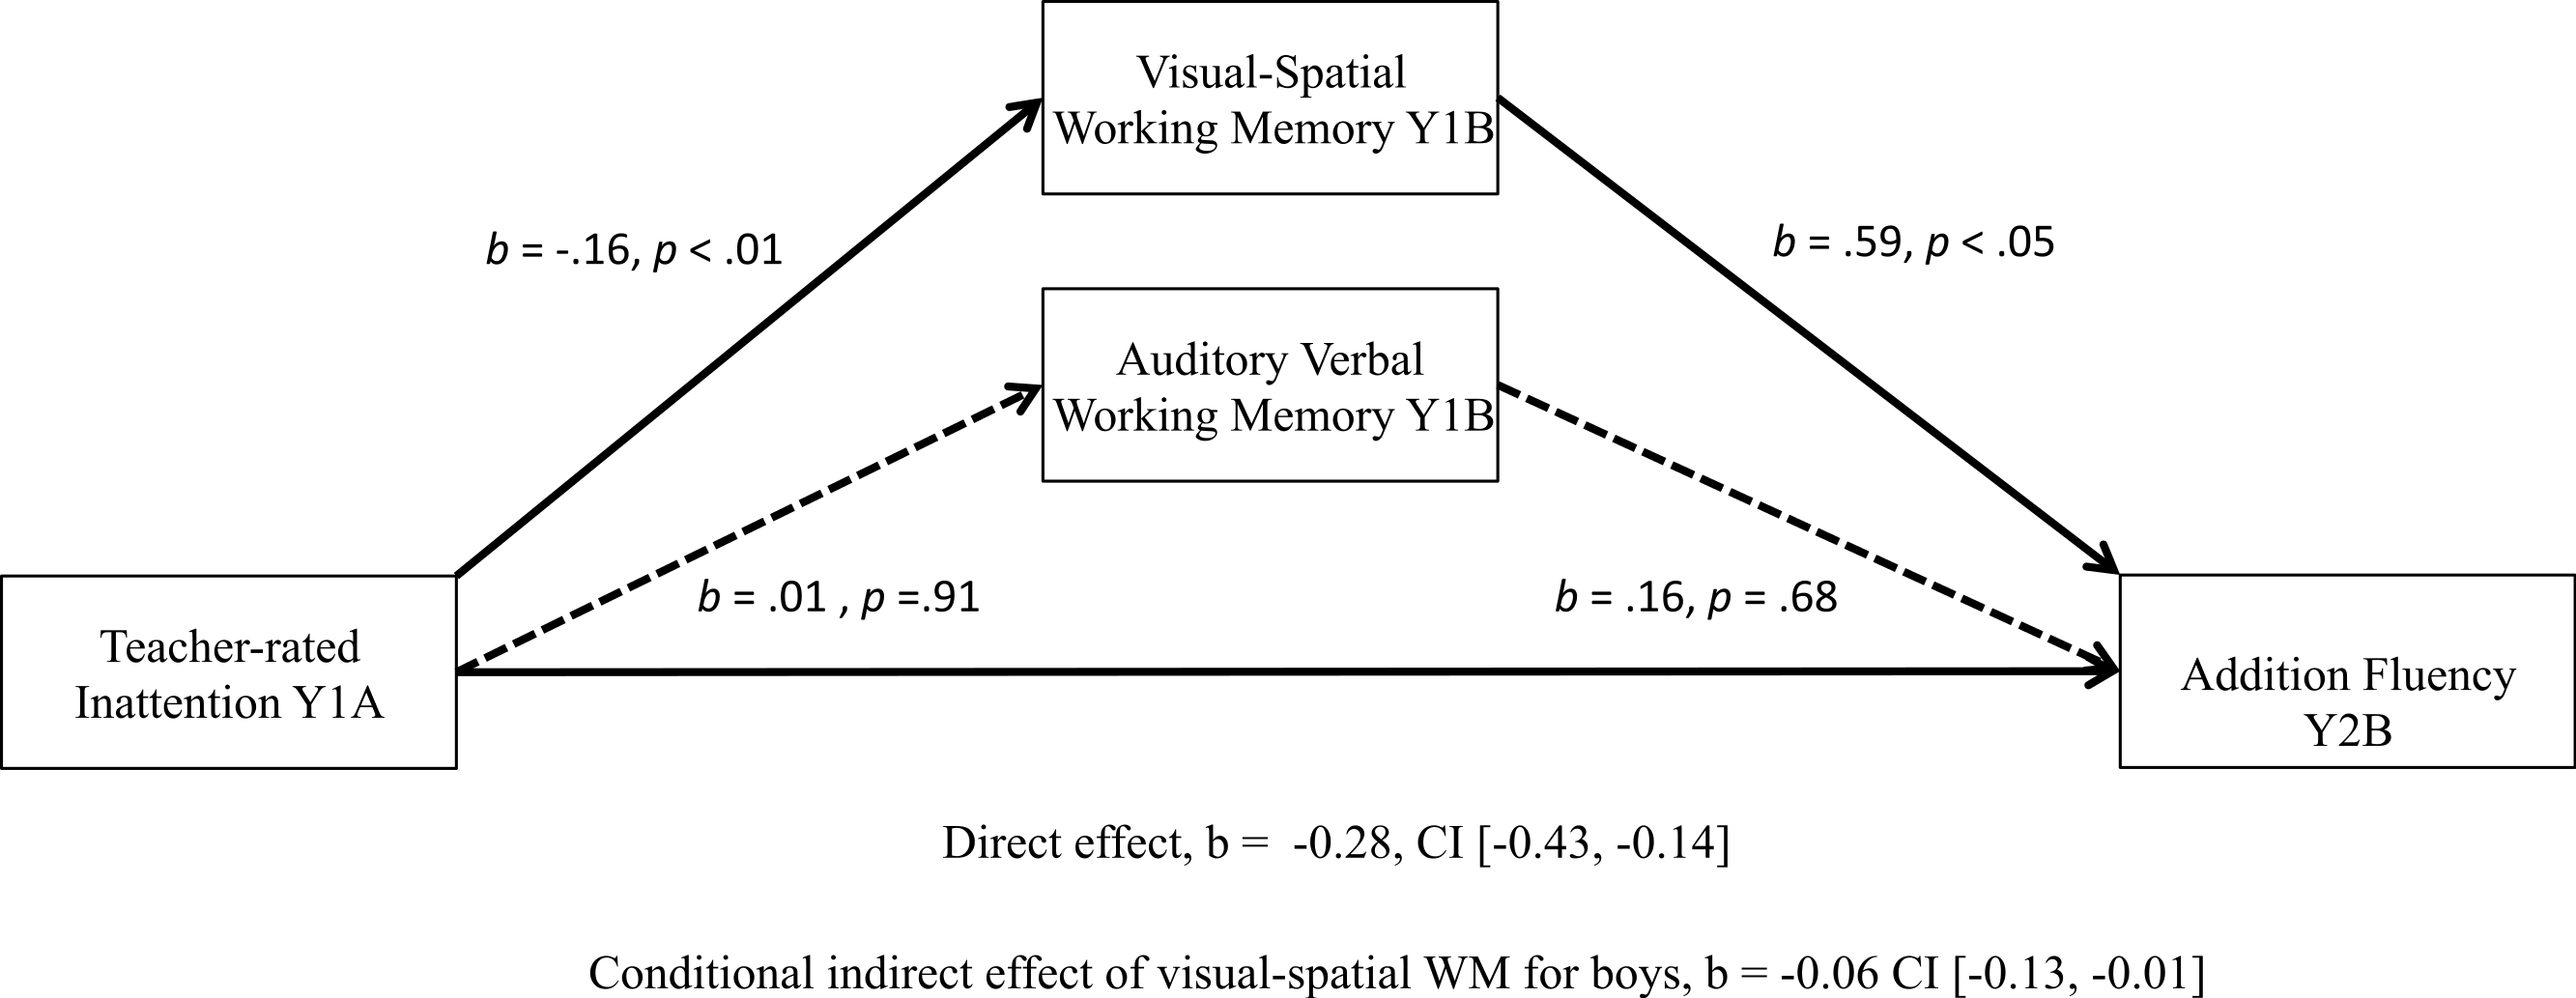 Longitudinal Relations Among Inattention Working Memory